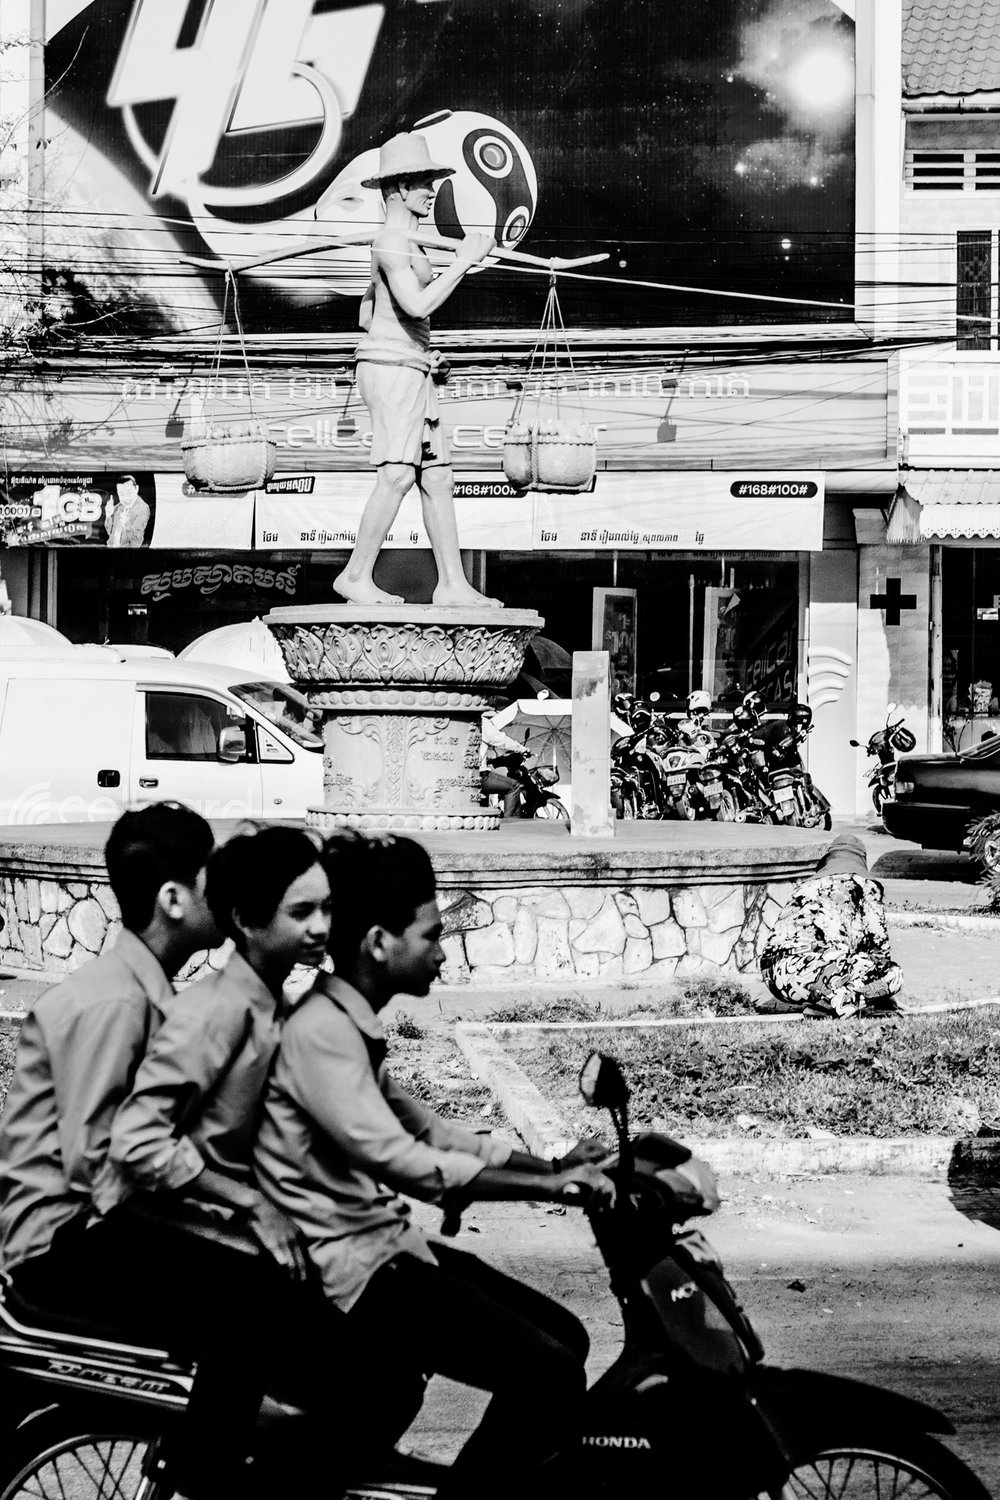 O Saillard Photographe Cambodge-023.jpg